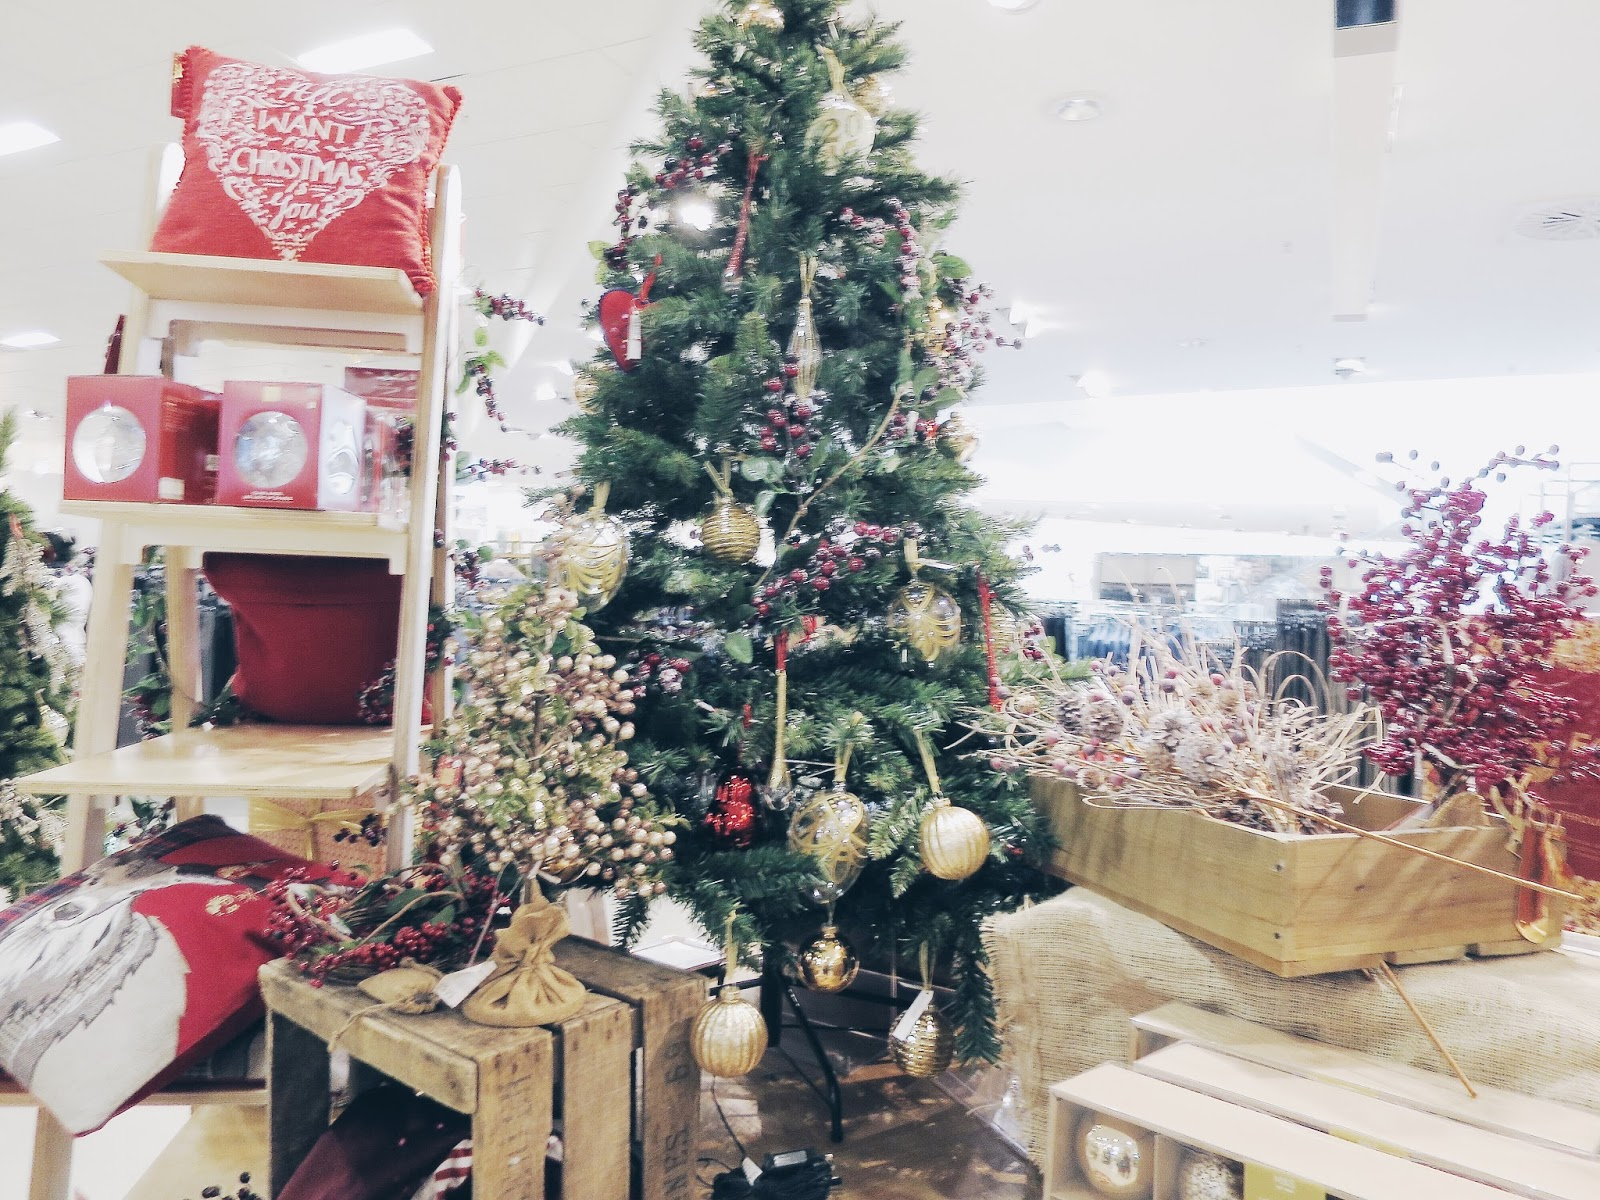 Christmas, Christmas gift guide, what to buy people at christmas, west quay, christmas shopping, Lifestyle, gift guide, winter,